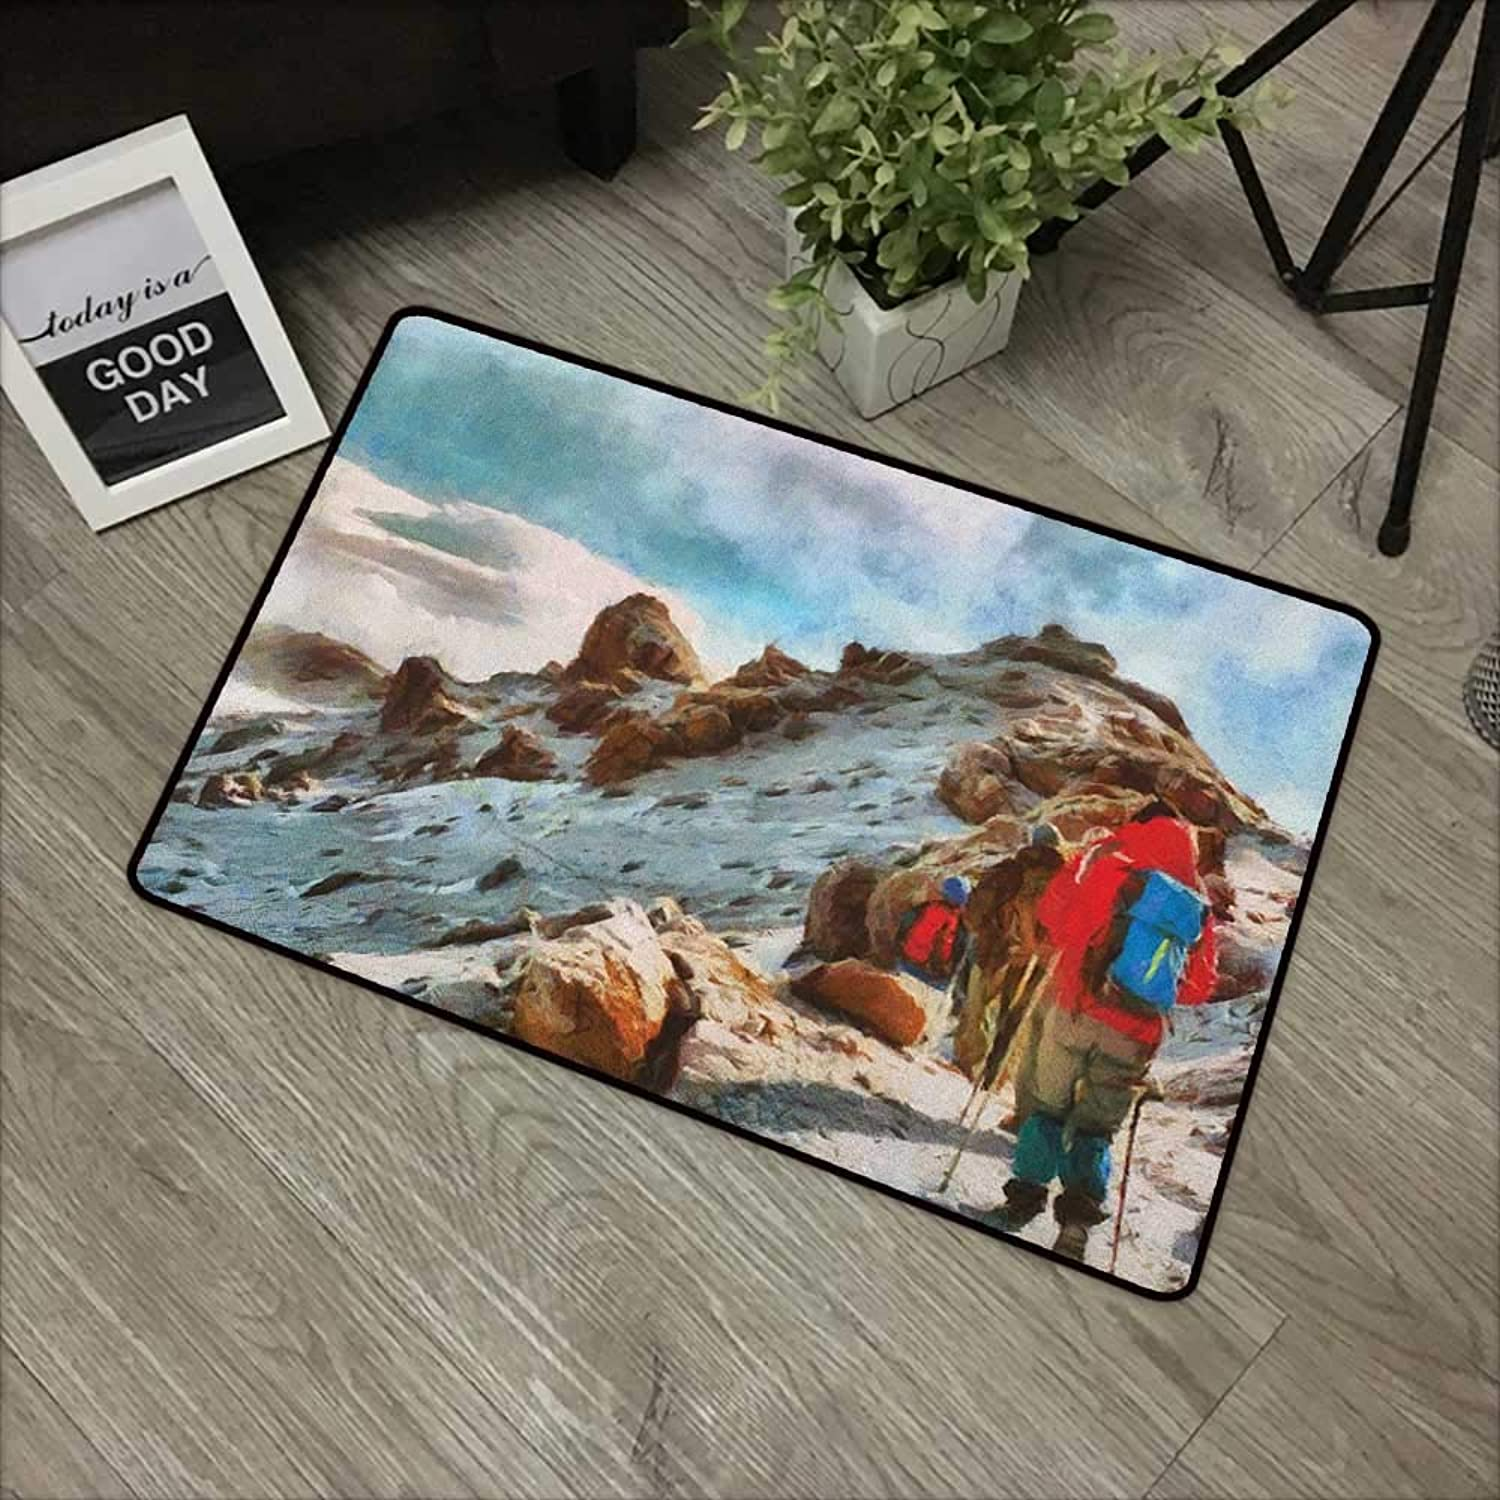 Corridor Door mat W35 x L59 INCH Mountain,Group of Trekkers Hiking Among Snows of Kilimanjaro in Winter in Painting Style, Multicolor Easy to Clean, Easy to fold,Non-Slip Door Mat Carpet